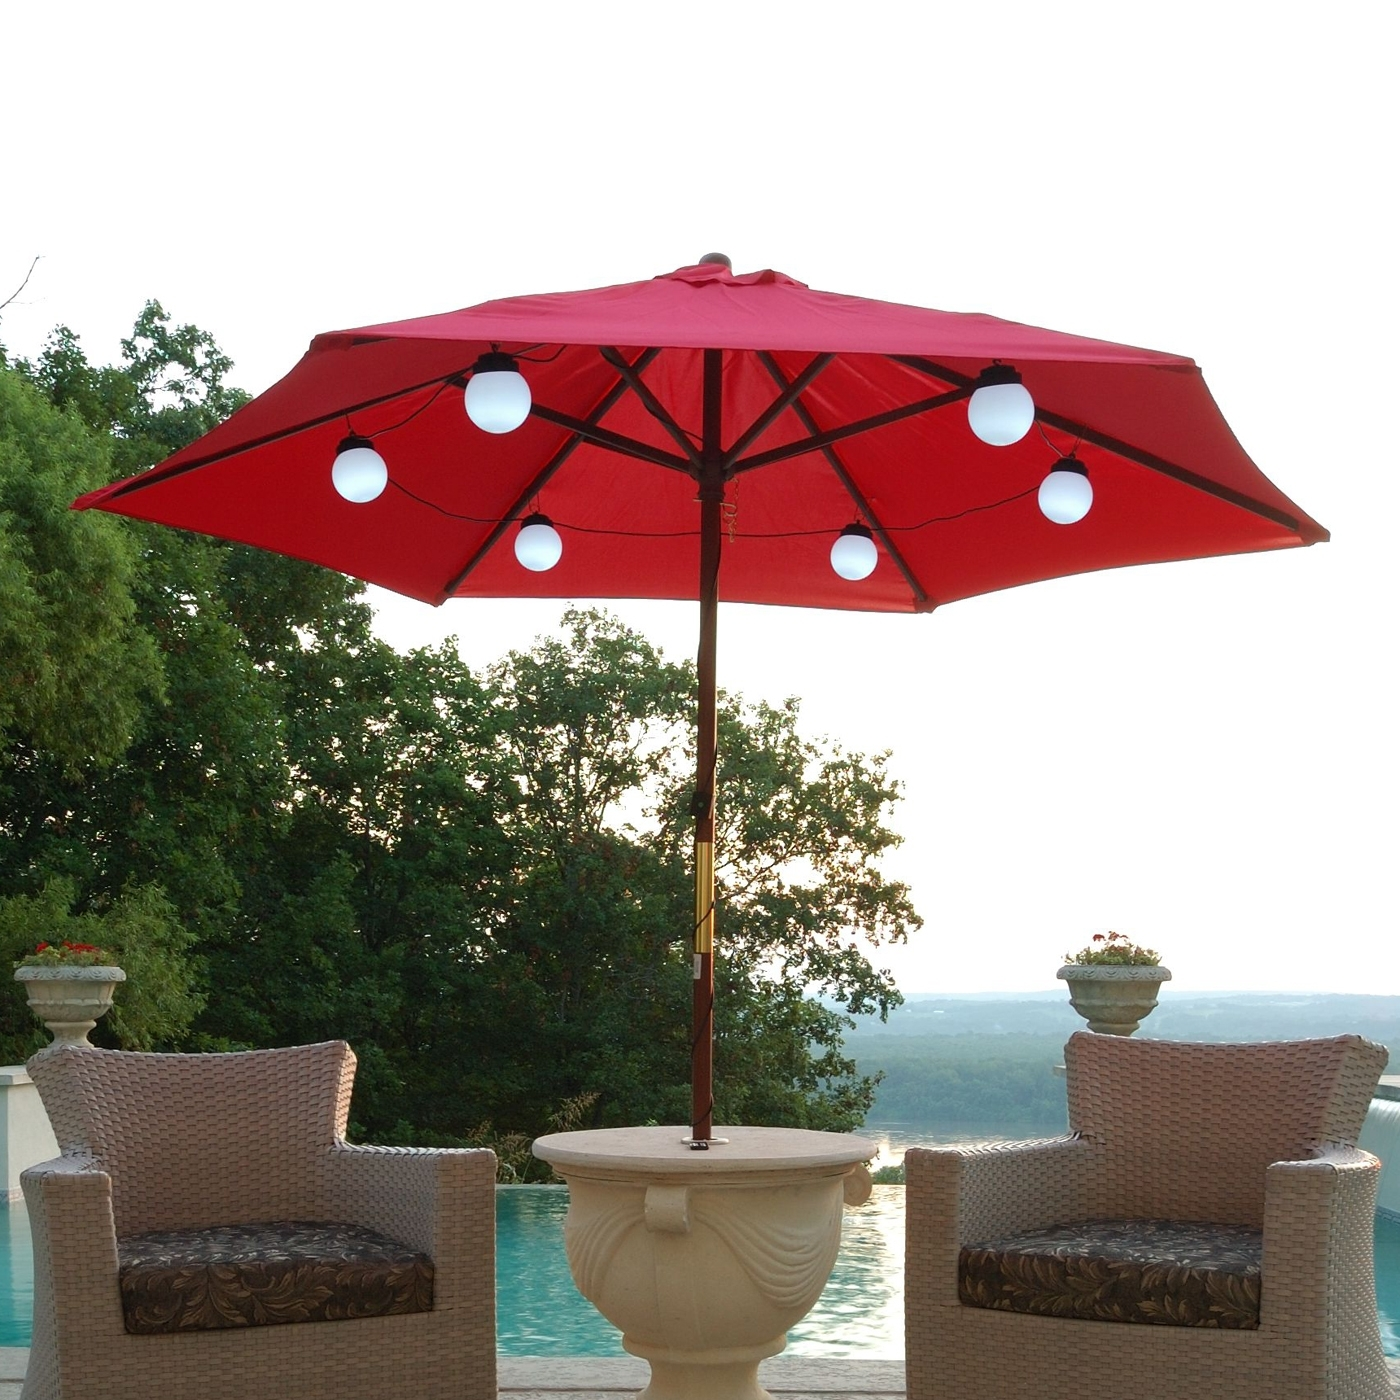 Patio Living Concepts 080 Bright White Led Solar Powered Umbrella Inside Most Popular Patio Umbrellas With Solar Lights (View 9 of 20)